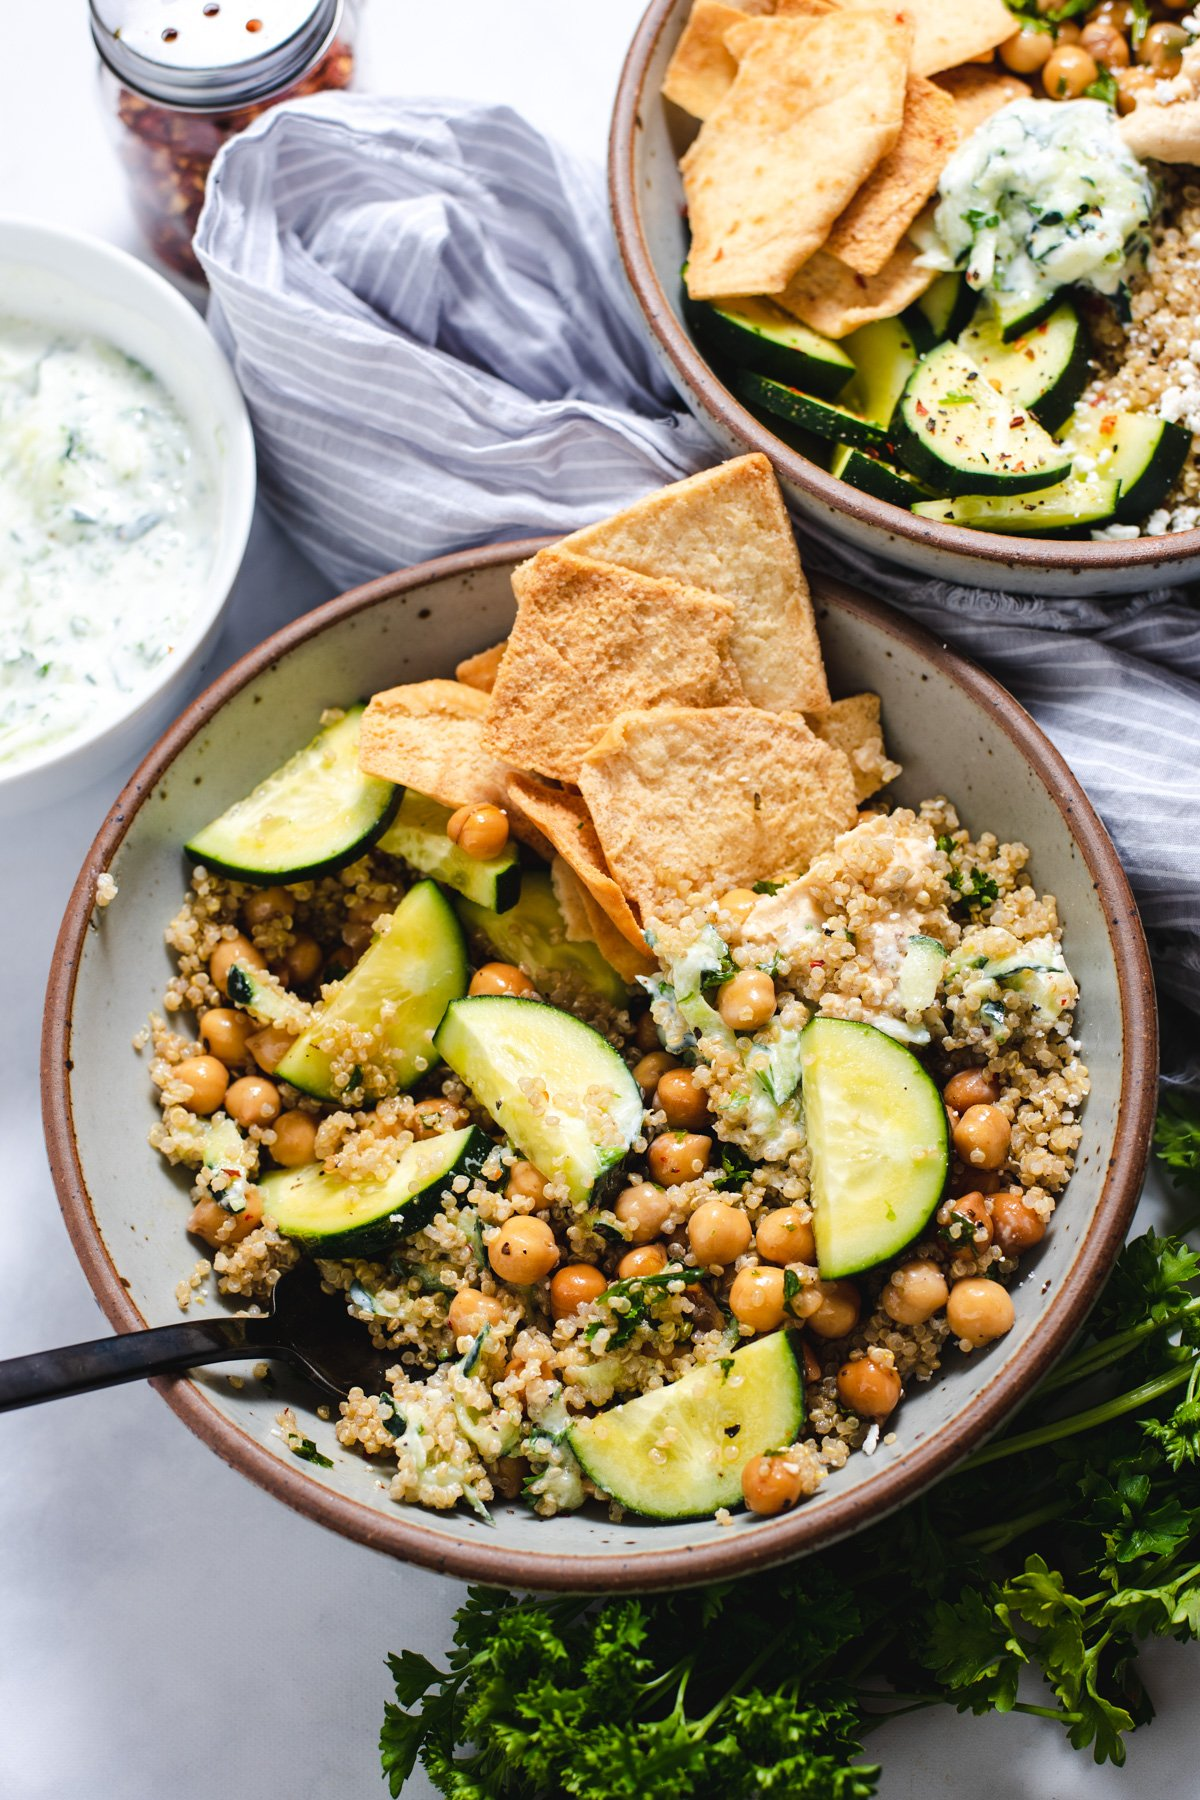 Gray ceramic bowl filled with cucumbers, quinoa, chickpeas and pita chips